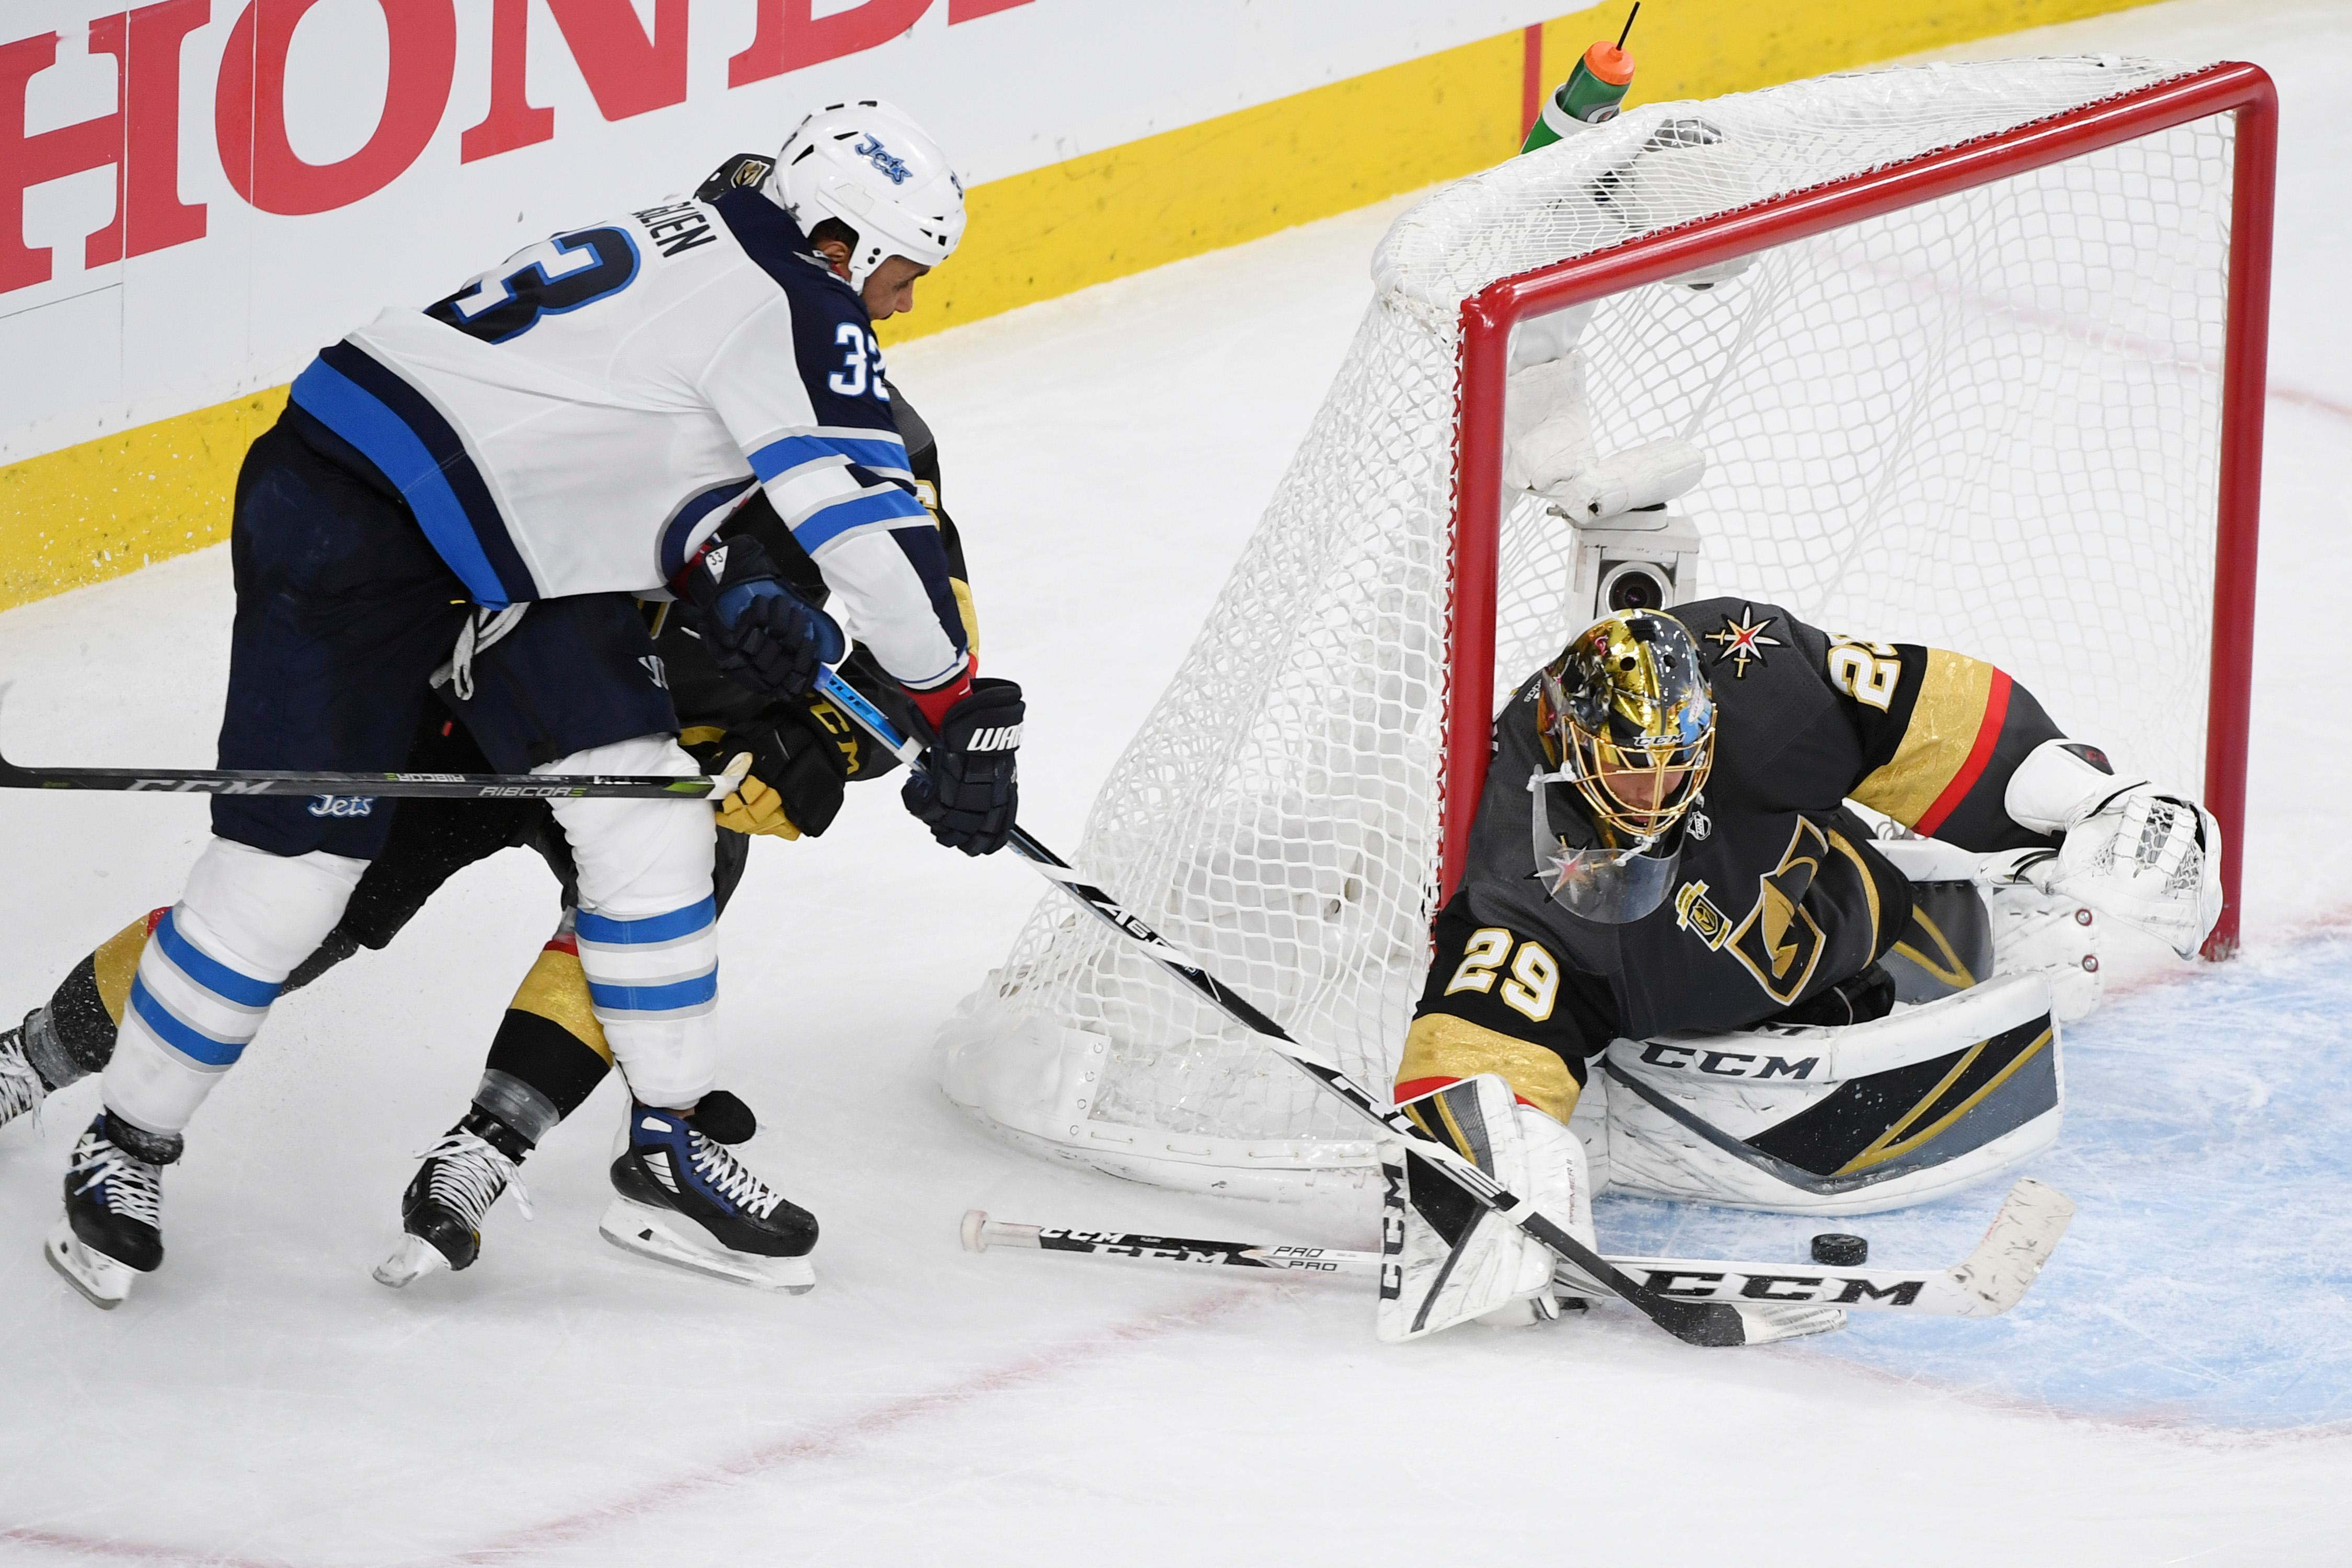 Vegas Golden Knights goaltender Marc-Andre Fleury (29) stops a wrap around shot by Winnipeg Jets defenseman Dustin Byfuglien (33) during Game 3 of their NHL hockey Western Conference Final game Wednesday, May 16, 2018, at T-Mobile Arena. The Golden Knights won 4-2 to take a 2-1 lead in the series. CREDIT: Sam Morris/Las Vegas News Bureau